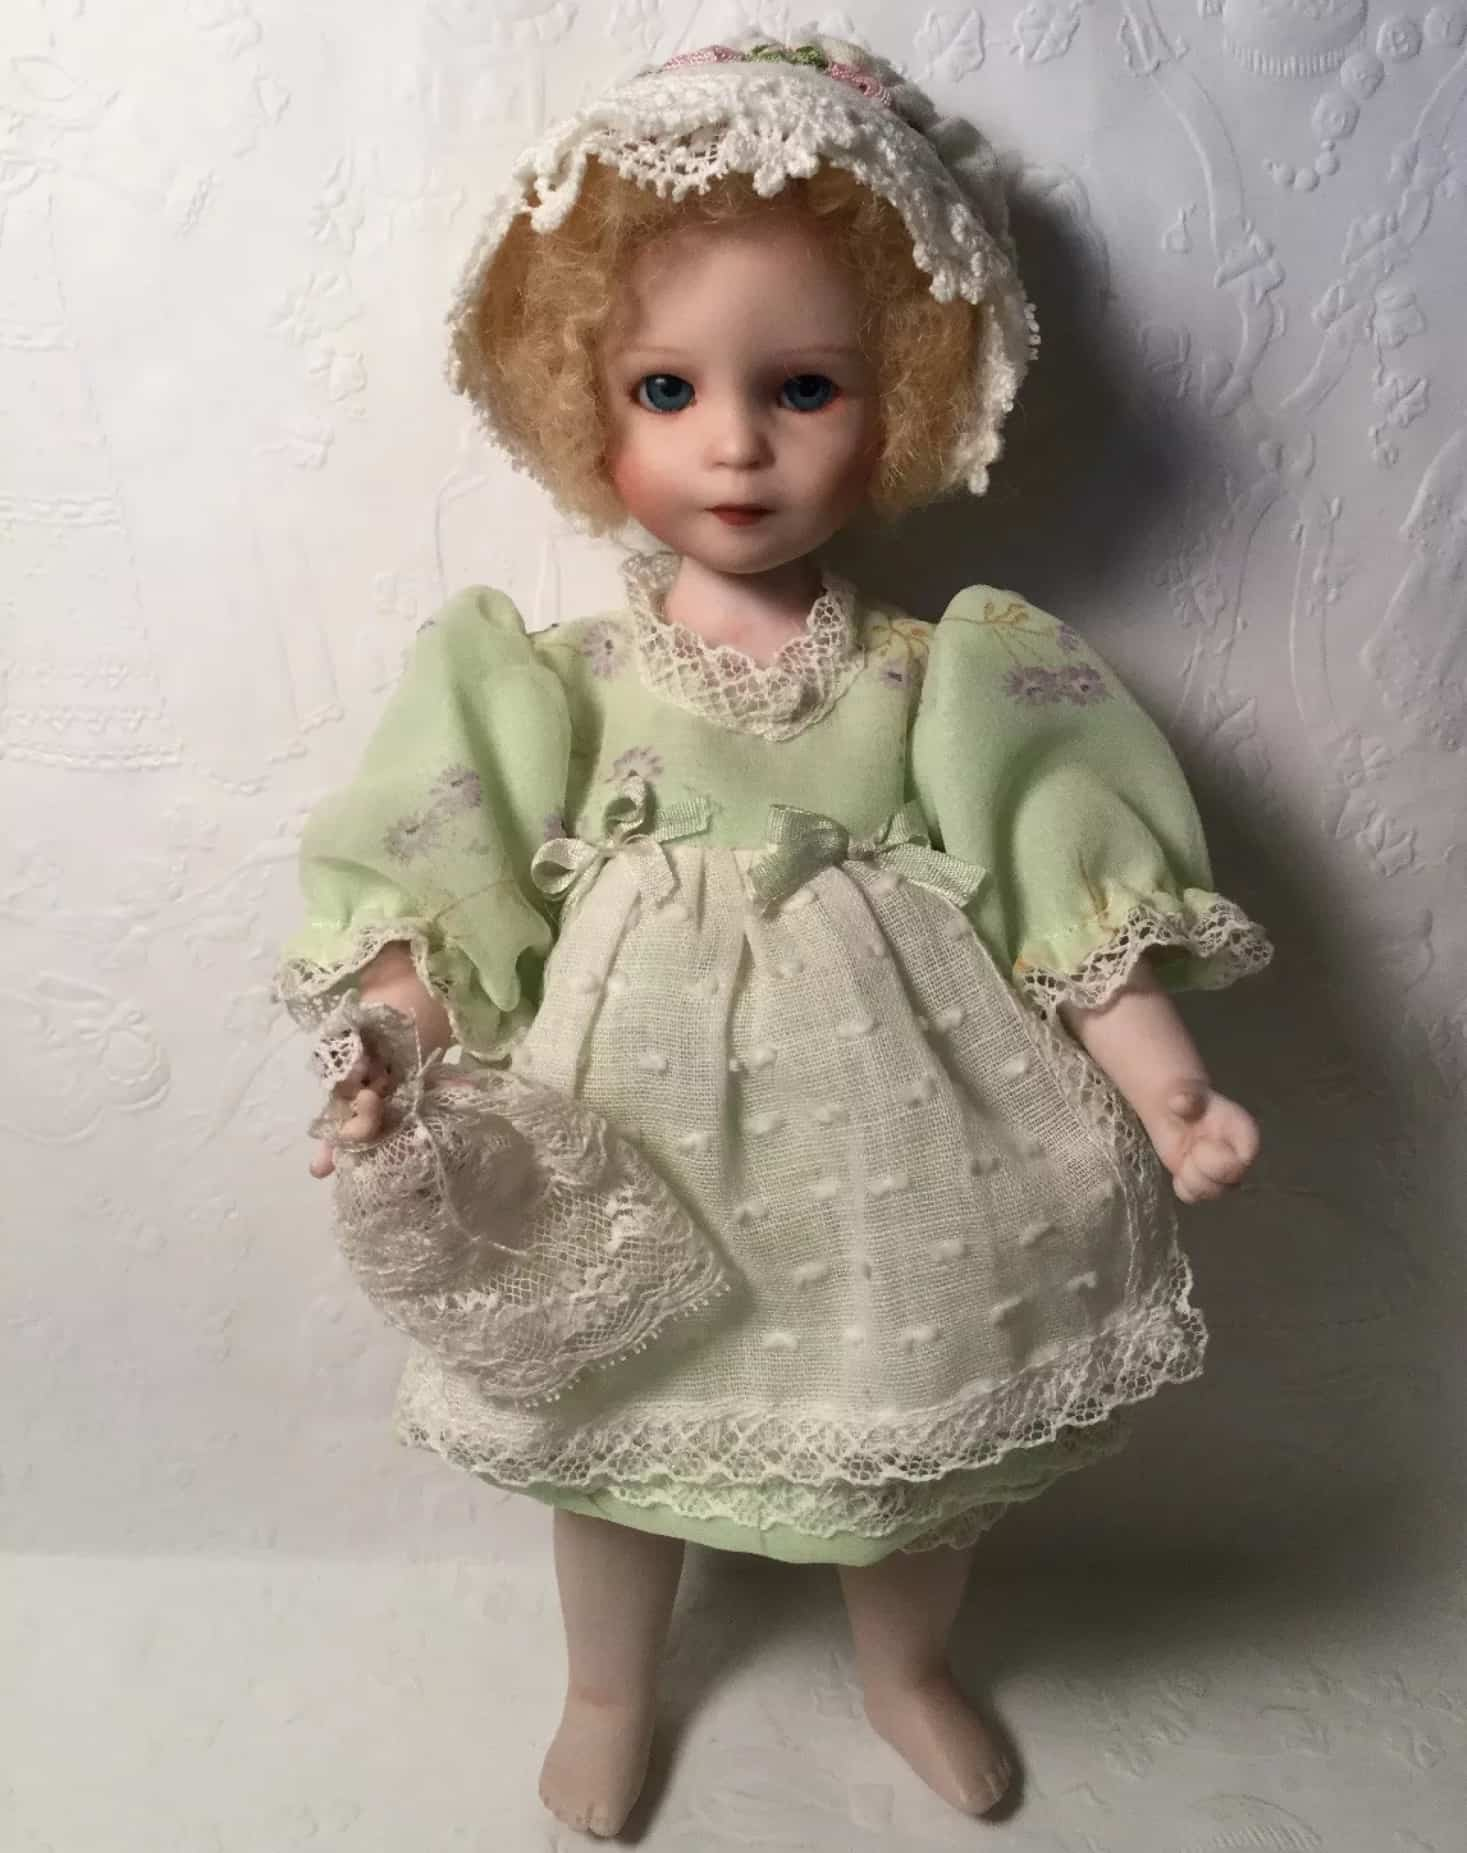 yolanda-bello-porcelain-doll-callie-rare-studio-crafted-limited-edition-of